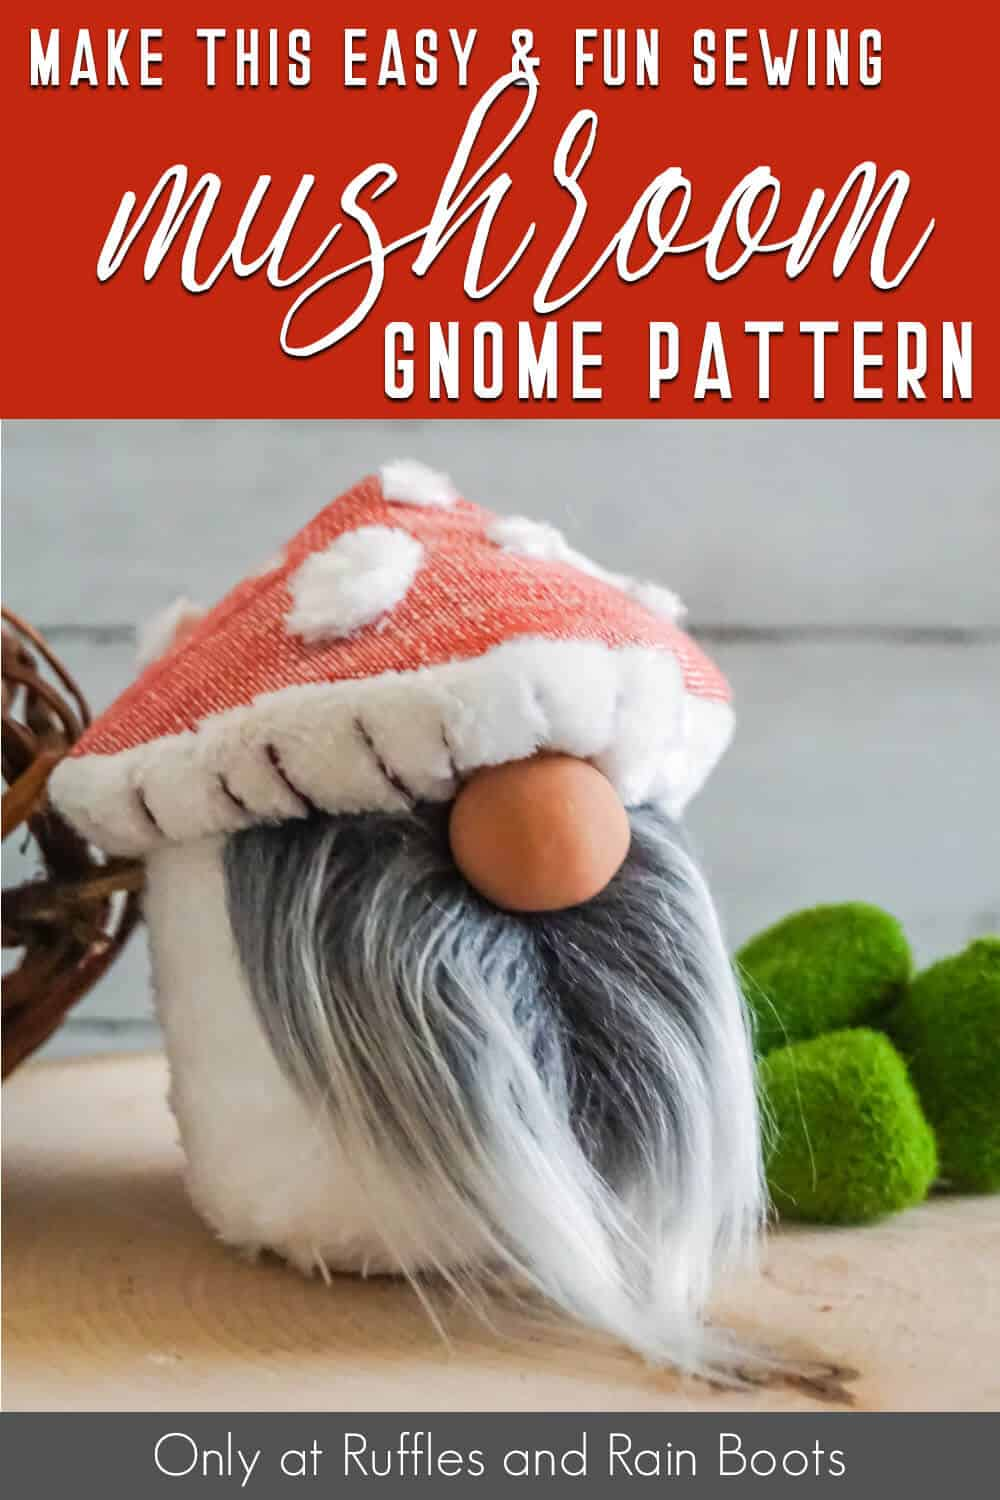 diy mushroom gnome sewing pattern with text which reads make this easy & fun sewing mushroom gnome pattern